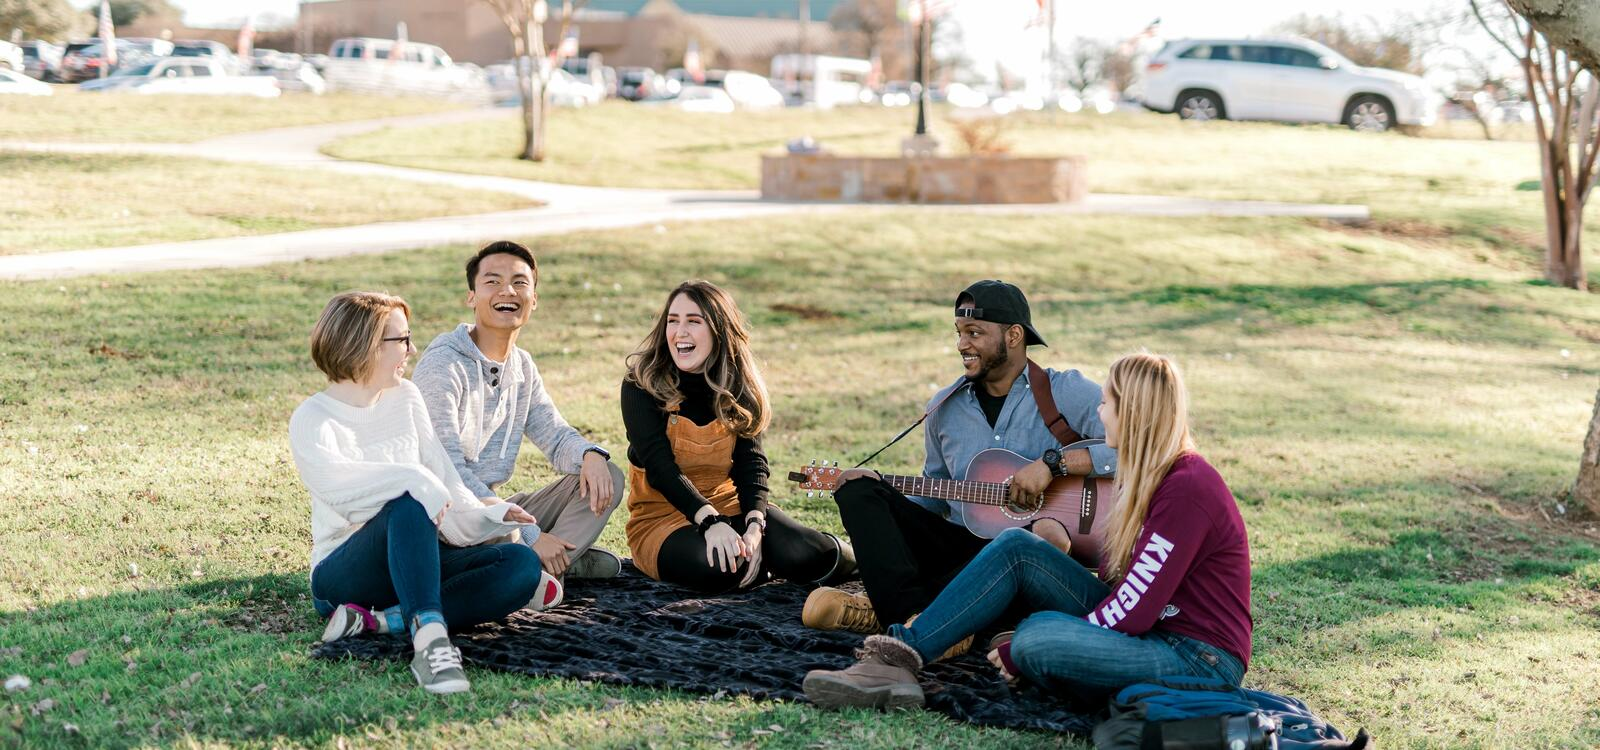 Five students sit under a tree on a blanket laughing and singing as one studentplays the guitar